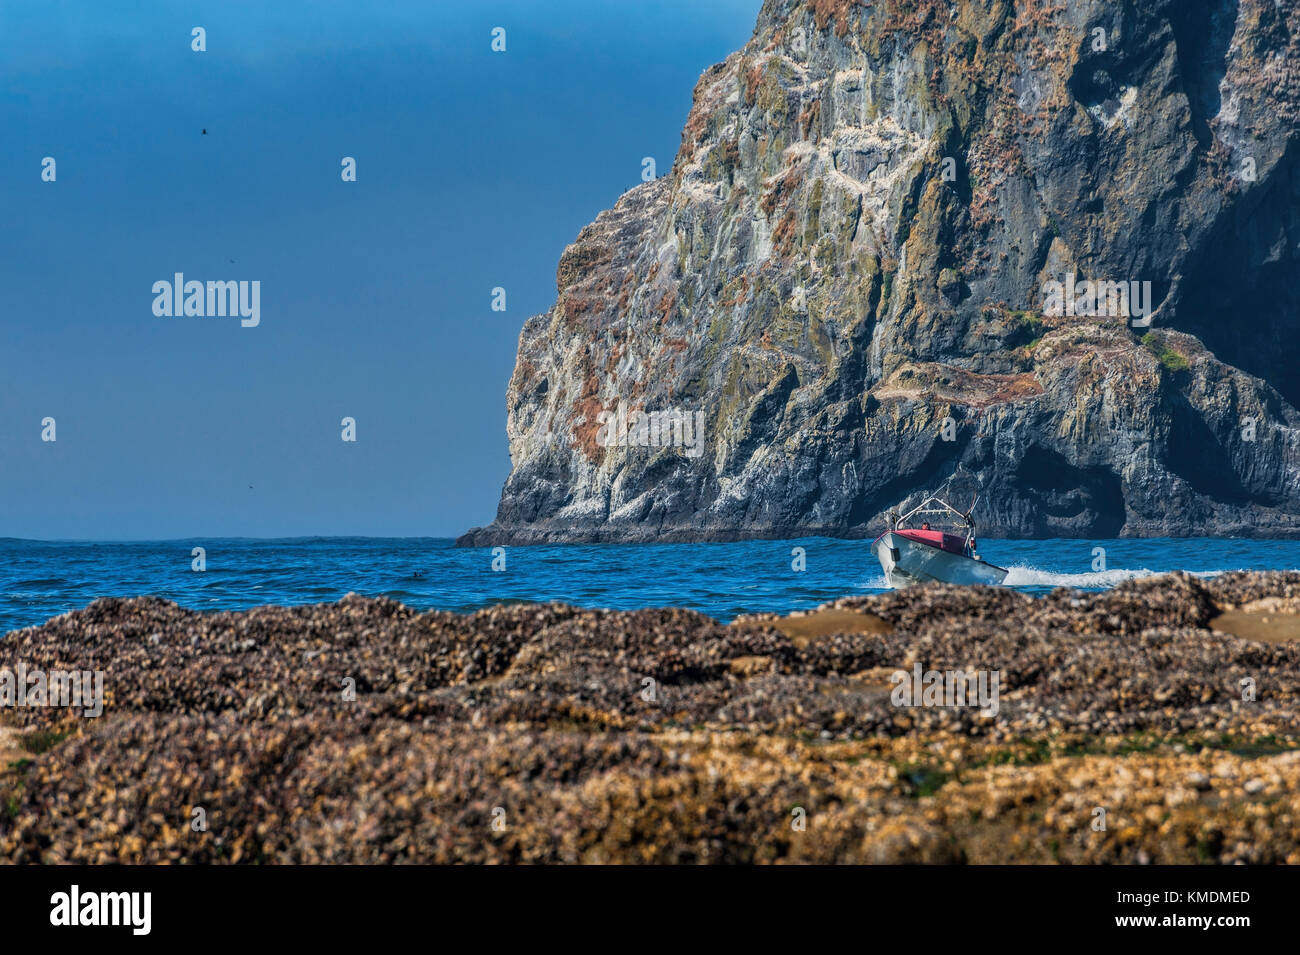 Pacific City, Oregon, USA - July 2, 2015: A dory boat passes in front of Haystack Rock making it's approach - Stock Image